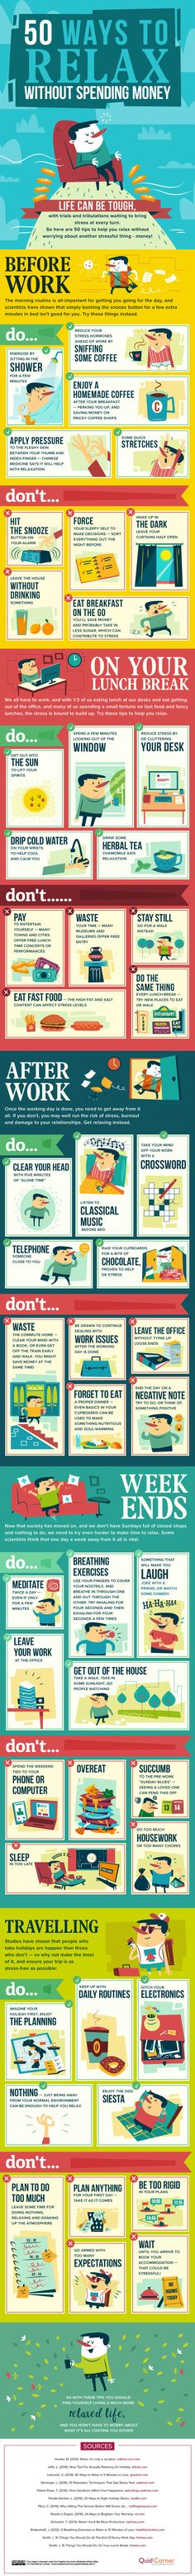 50 ways to relax without spending money #infographic #Health #Stress #Lifestyle